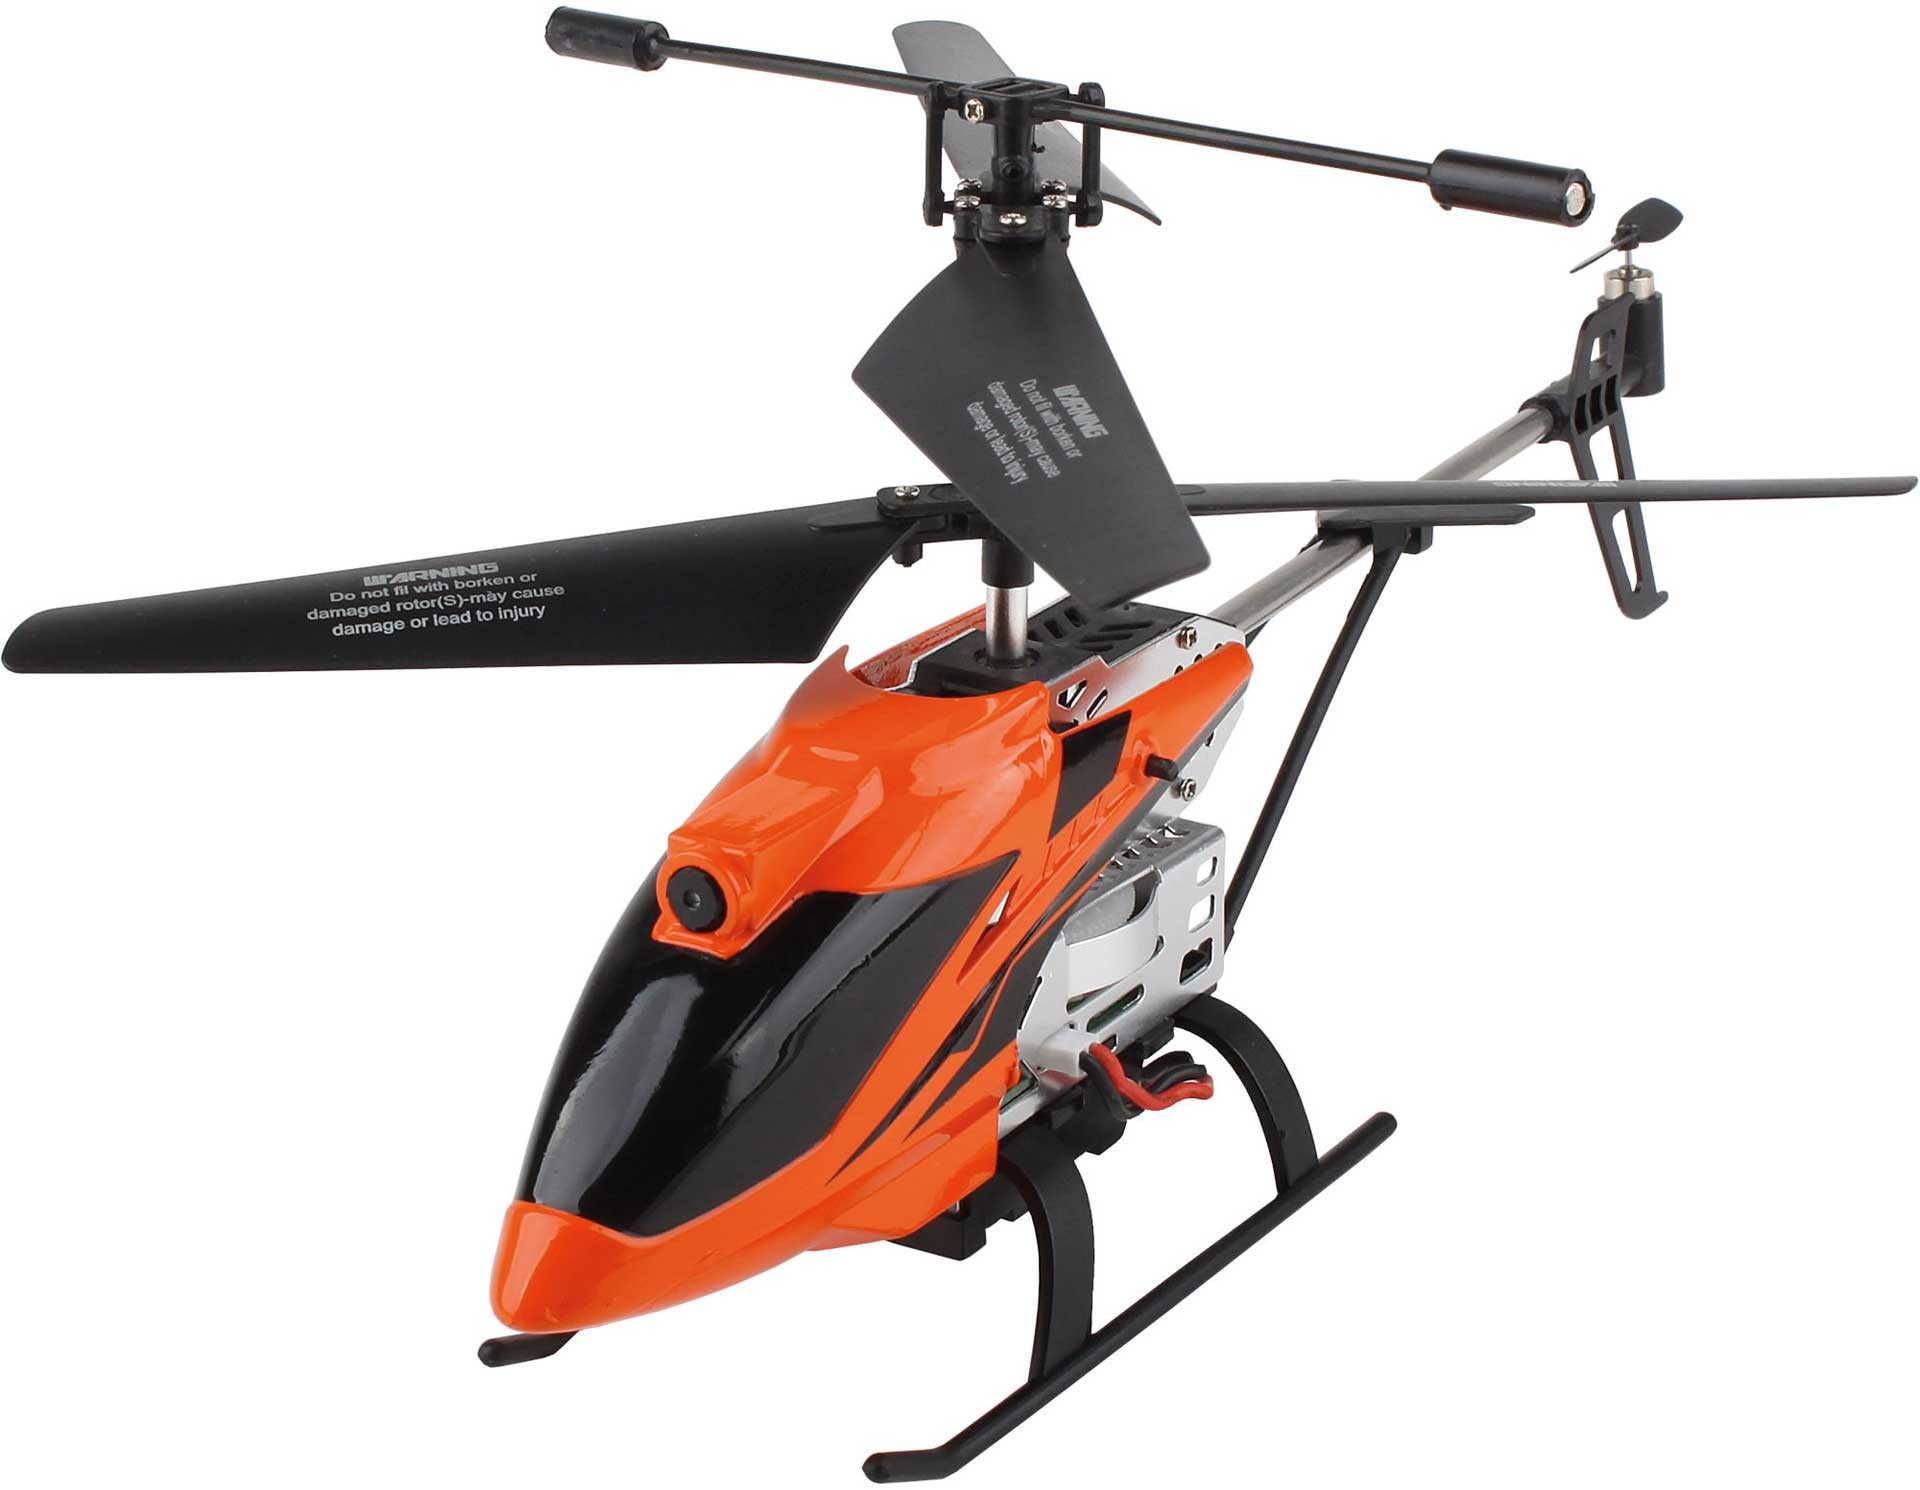 DRIVE & FLY MODELS DF-100 Pro FPV helicopter with FPV camera with altitude stabilization